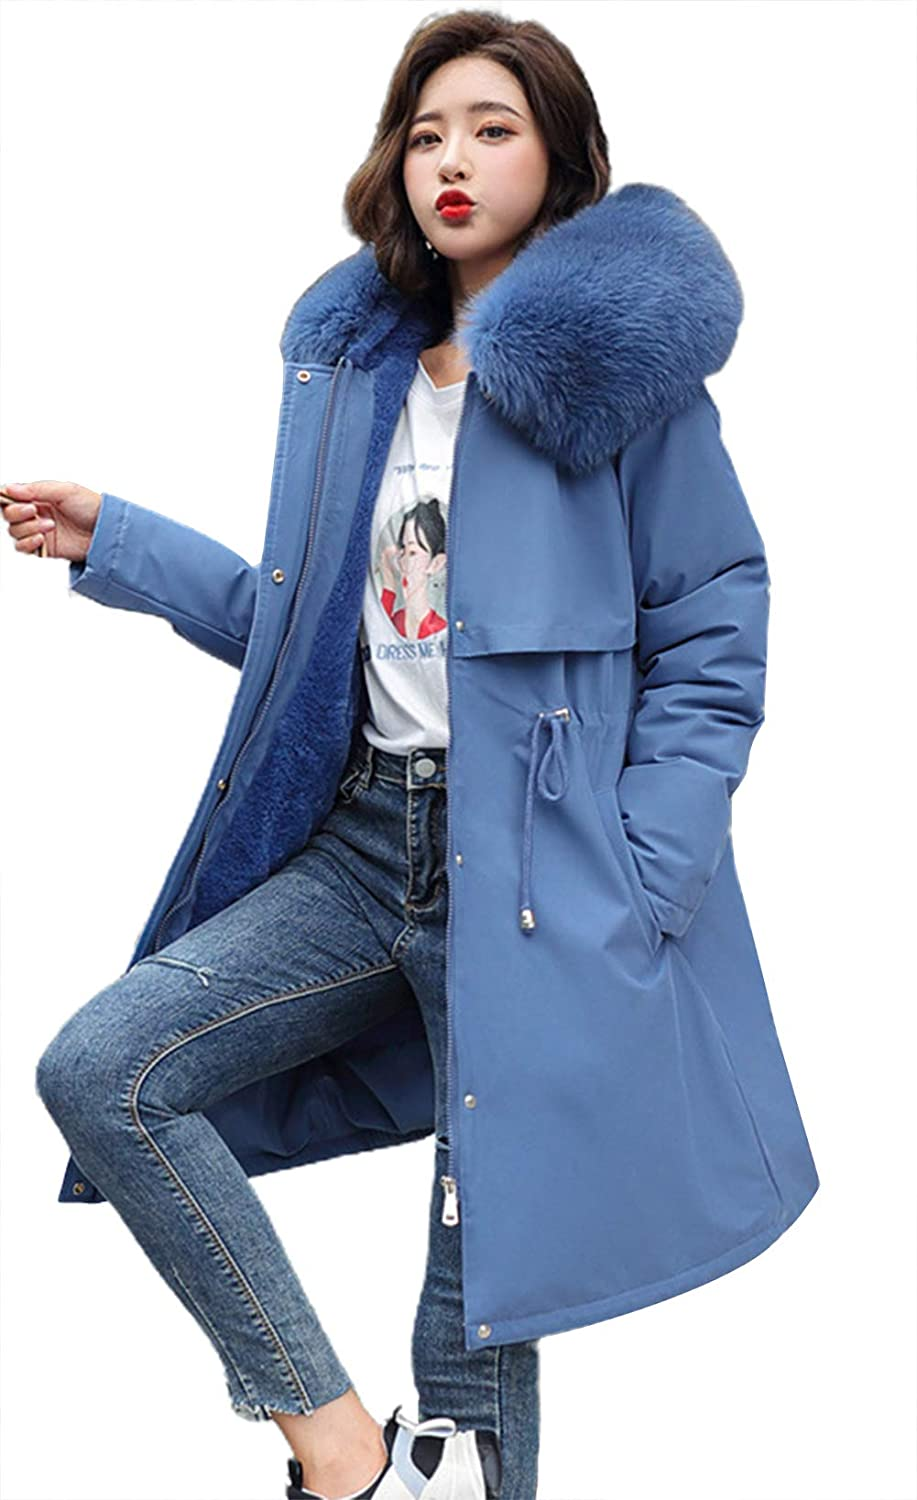 chouyatou Fixed price for sale Women's Windproof Sherpa Limited time cheap sale Lined Long Winter Coat Parka